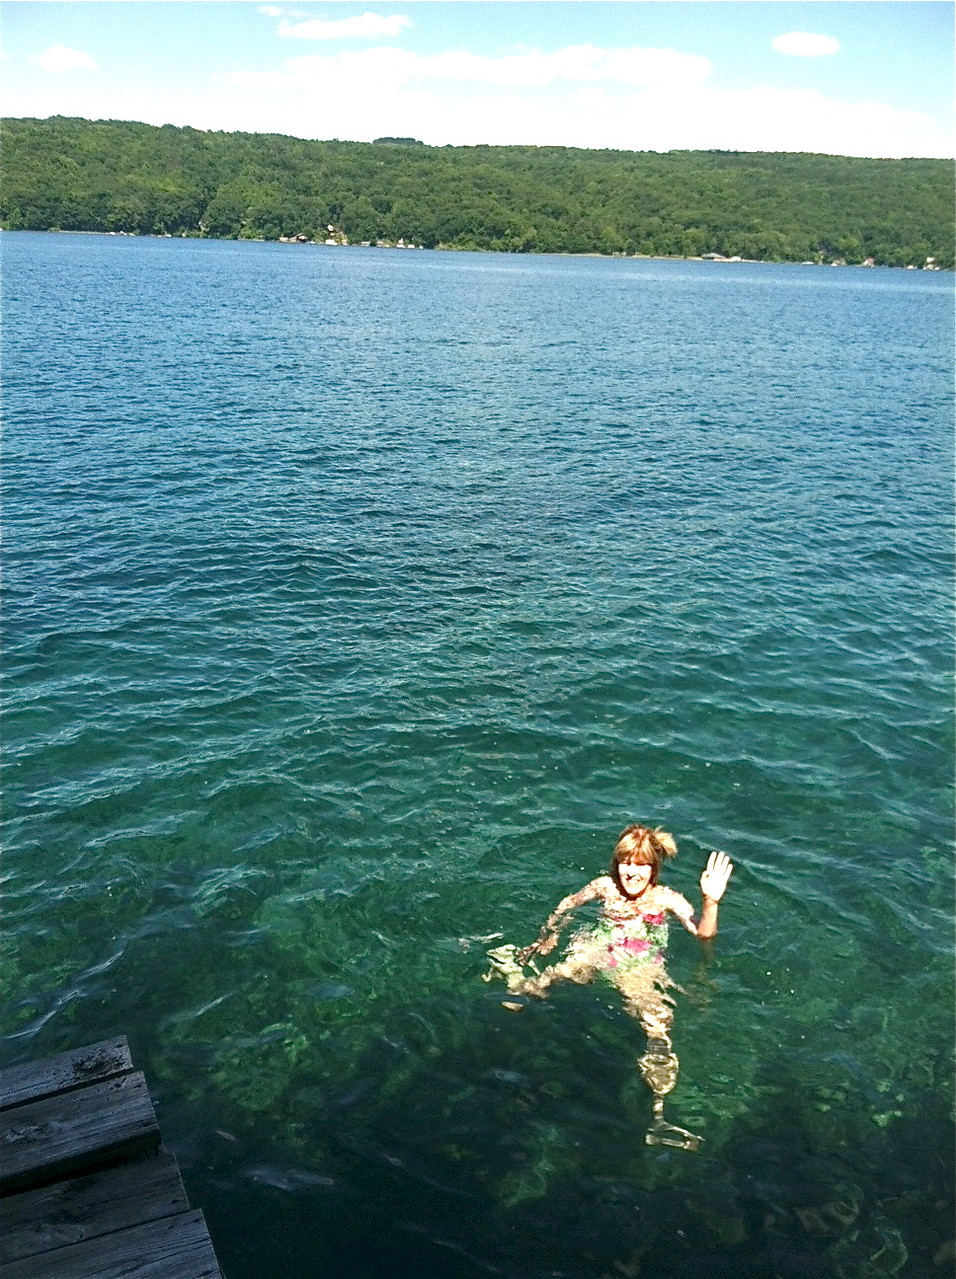 Nancy swimming, Skaneateles Lake